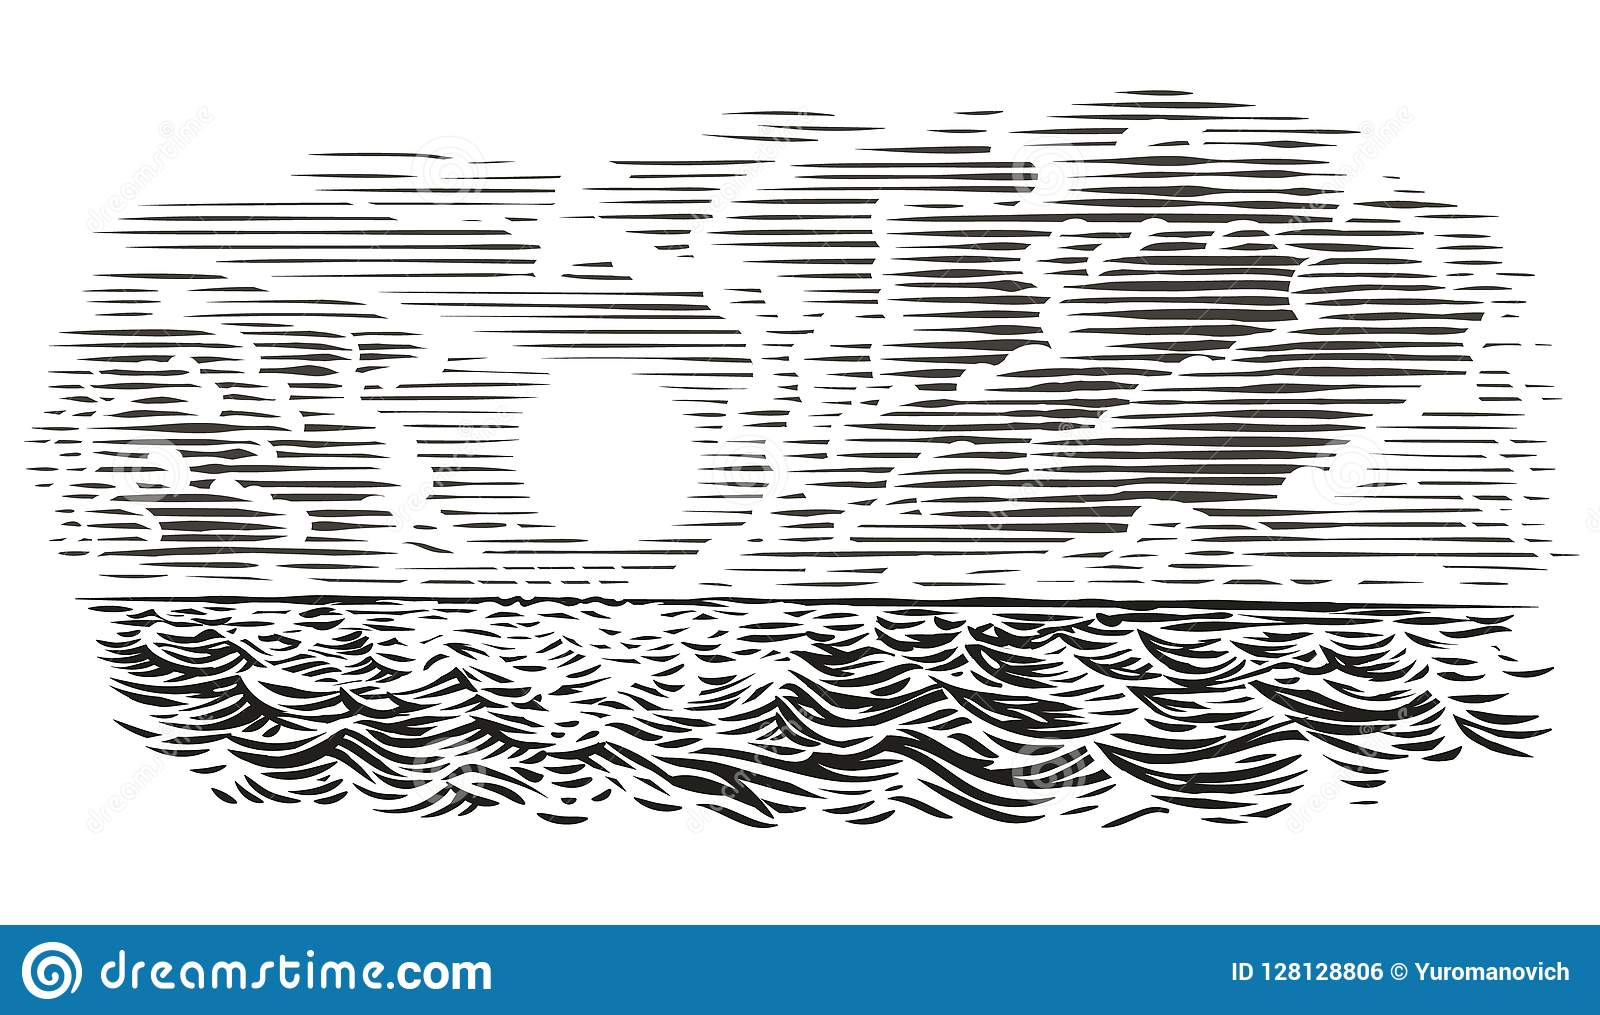 Sea view engraving style illustration. Vector, isolated, layered.